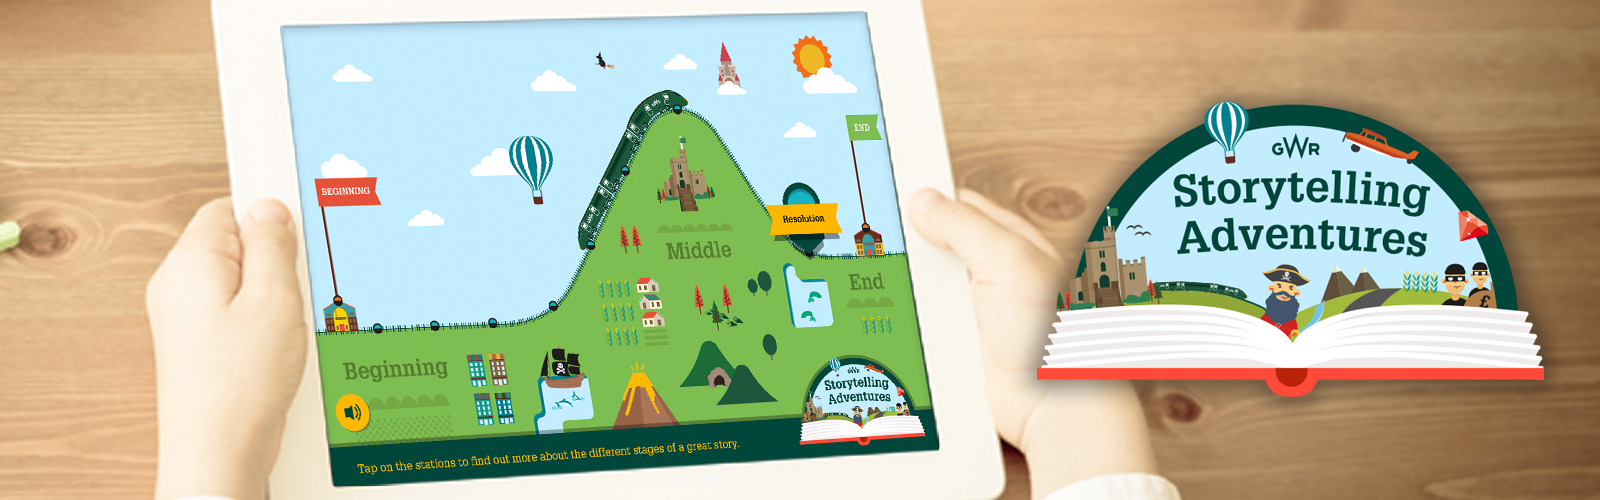 YGW Storytelling Adventures child with iPad